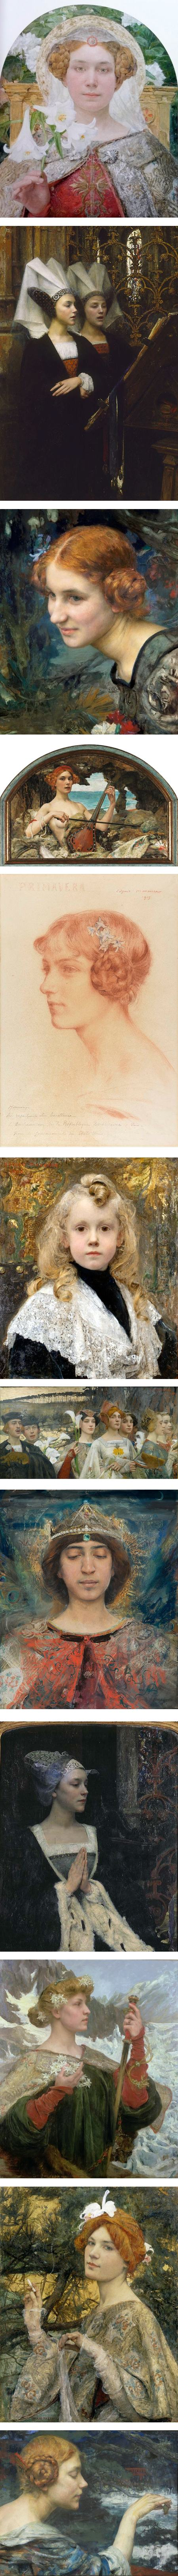 Edgar Maxence, French Symbolist painter